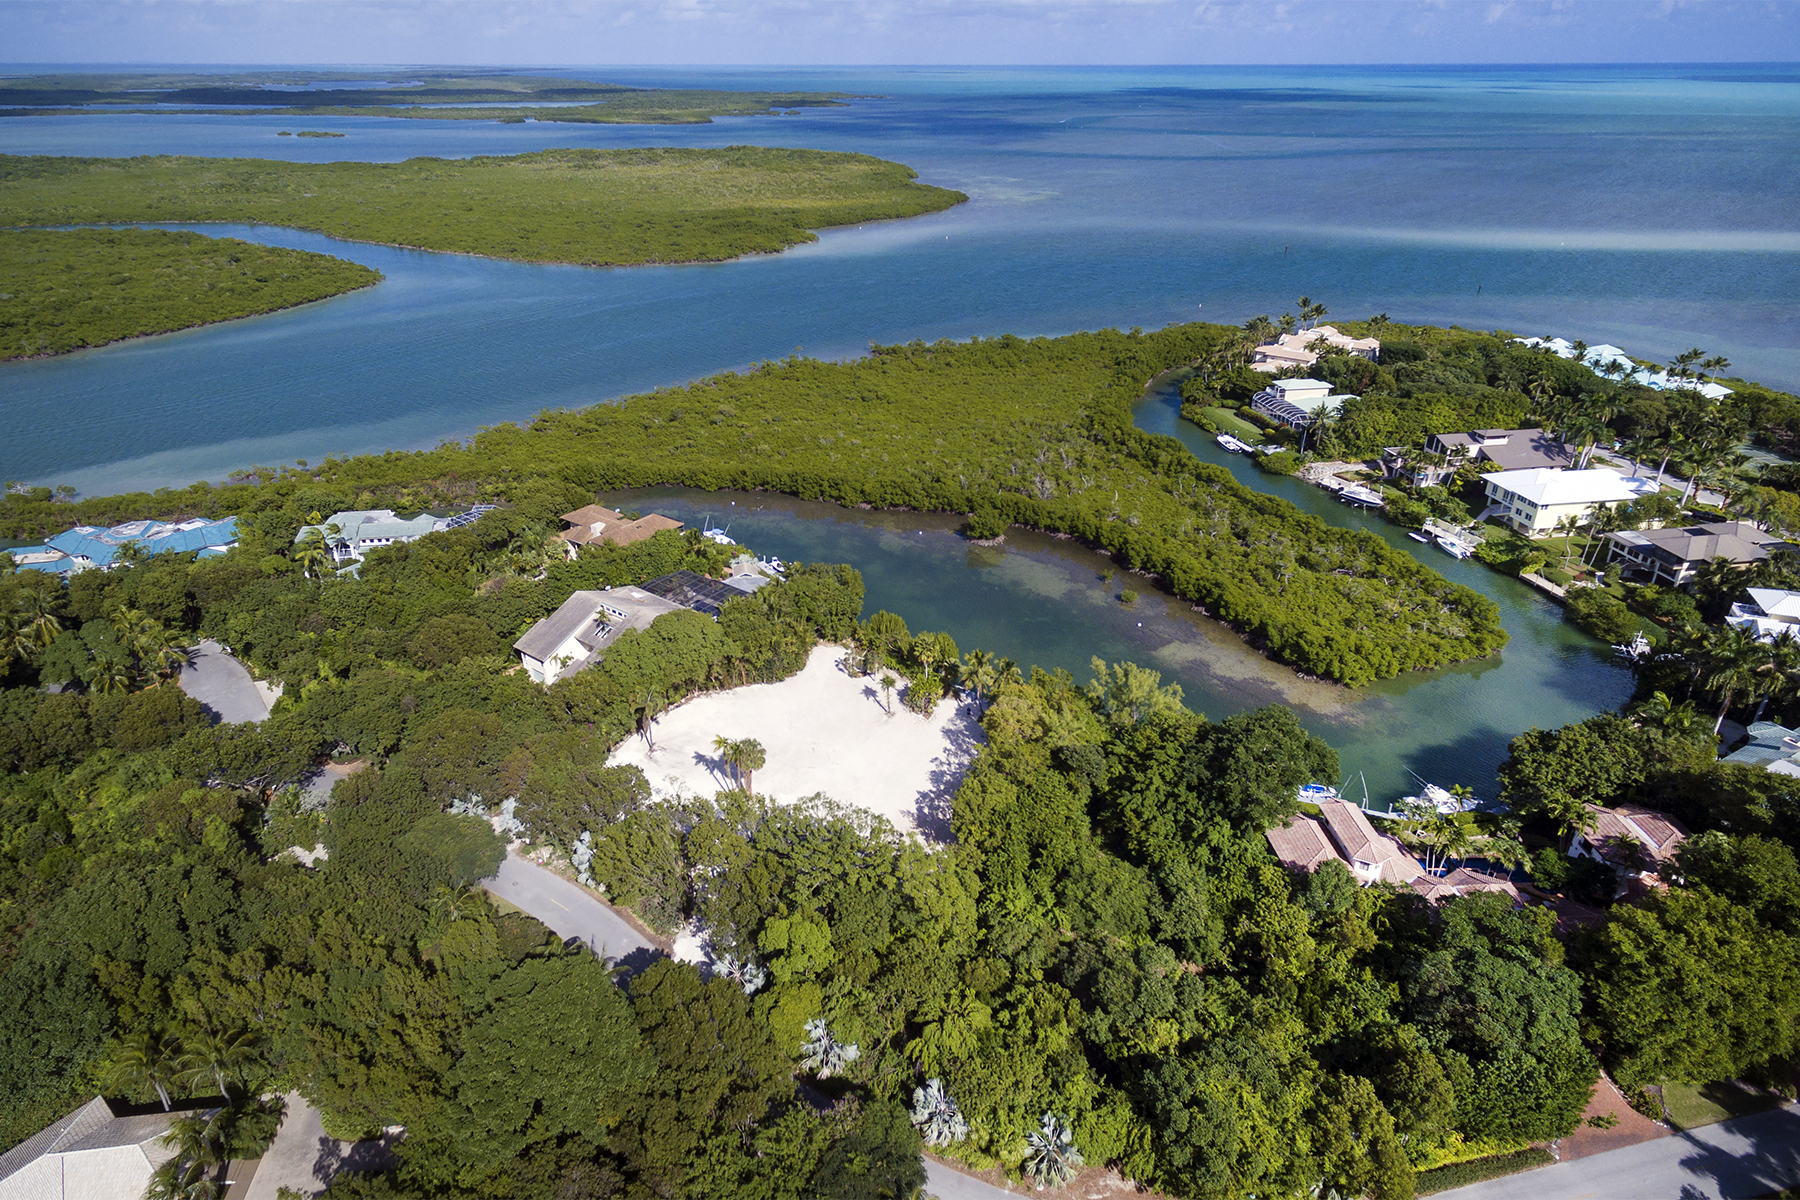 Terreno por un Venta en Expansive Location to Build Your Dream Home at Ocean Reef 40-42 Cardinal Lane, Ocean Reef Community, Key Largo, Florida, 33037 Estados Unidos